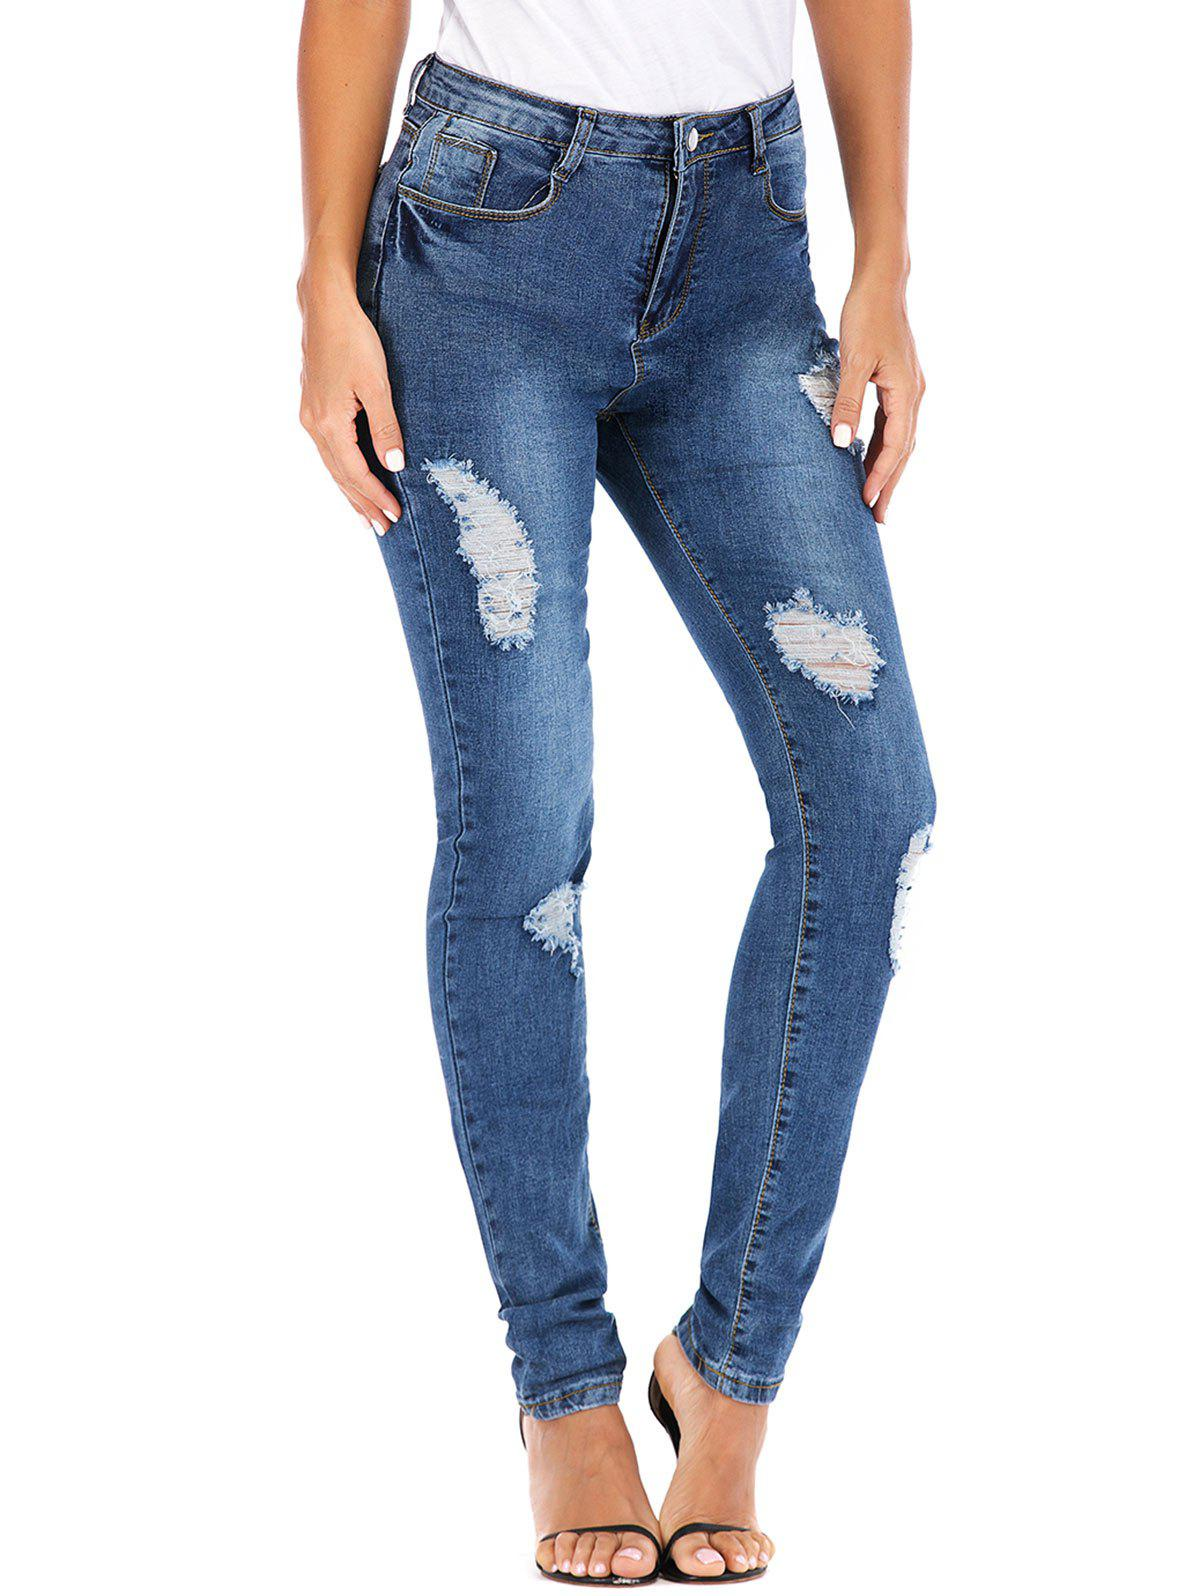 Bleach Wash High Waisted Distressed Skinny Jeans - DENIM BLUE S